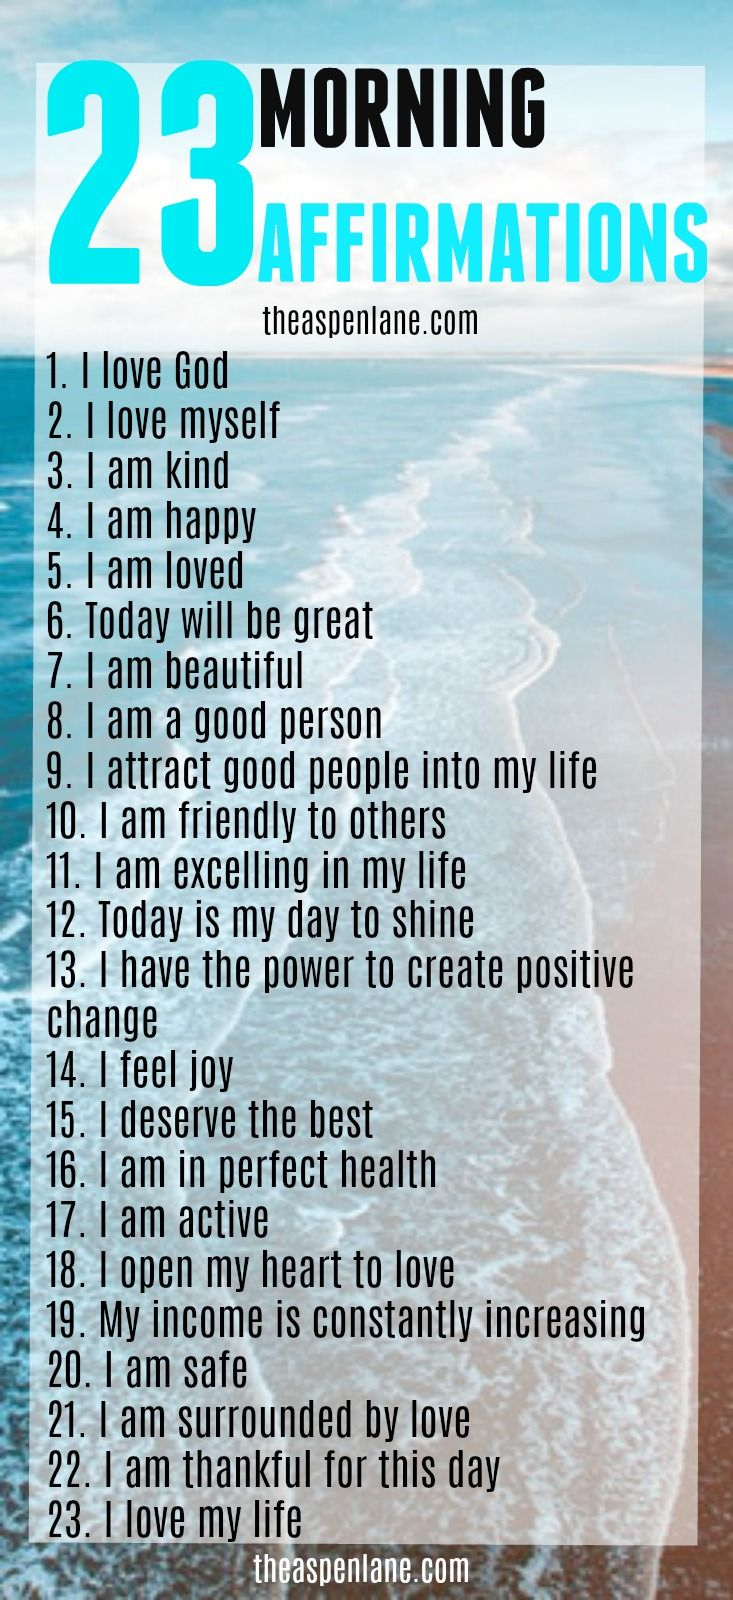 23 Morning Affirmations. Take some time each morning to read these positive affirmations and your day will be great! A positive mind will give you a positive life.